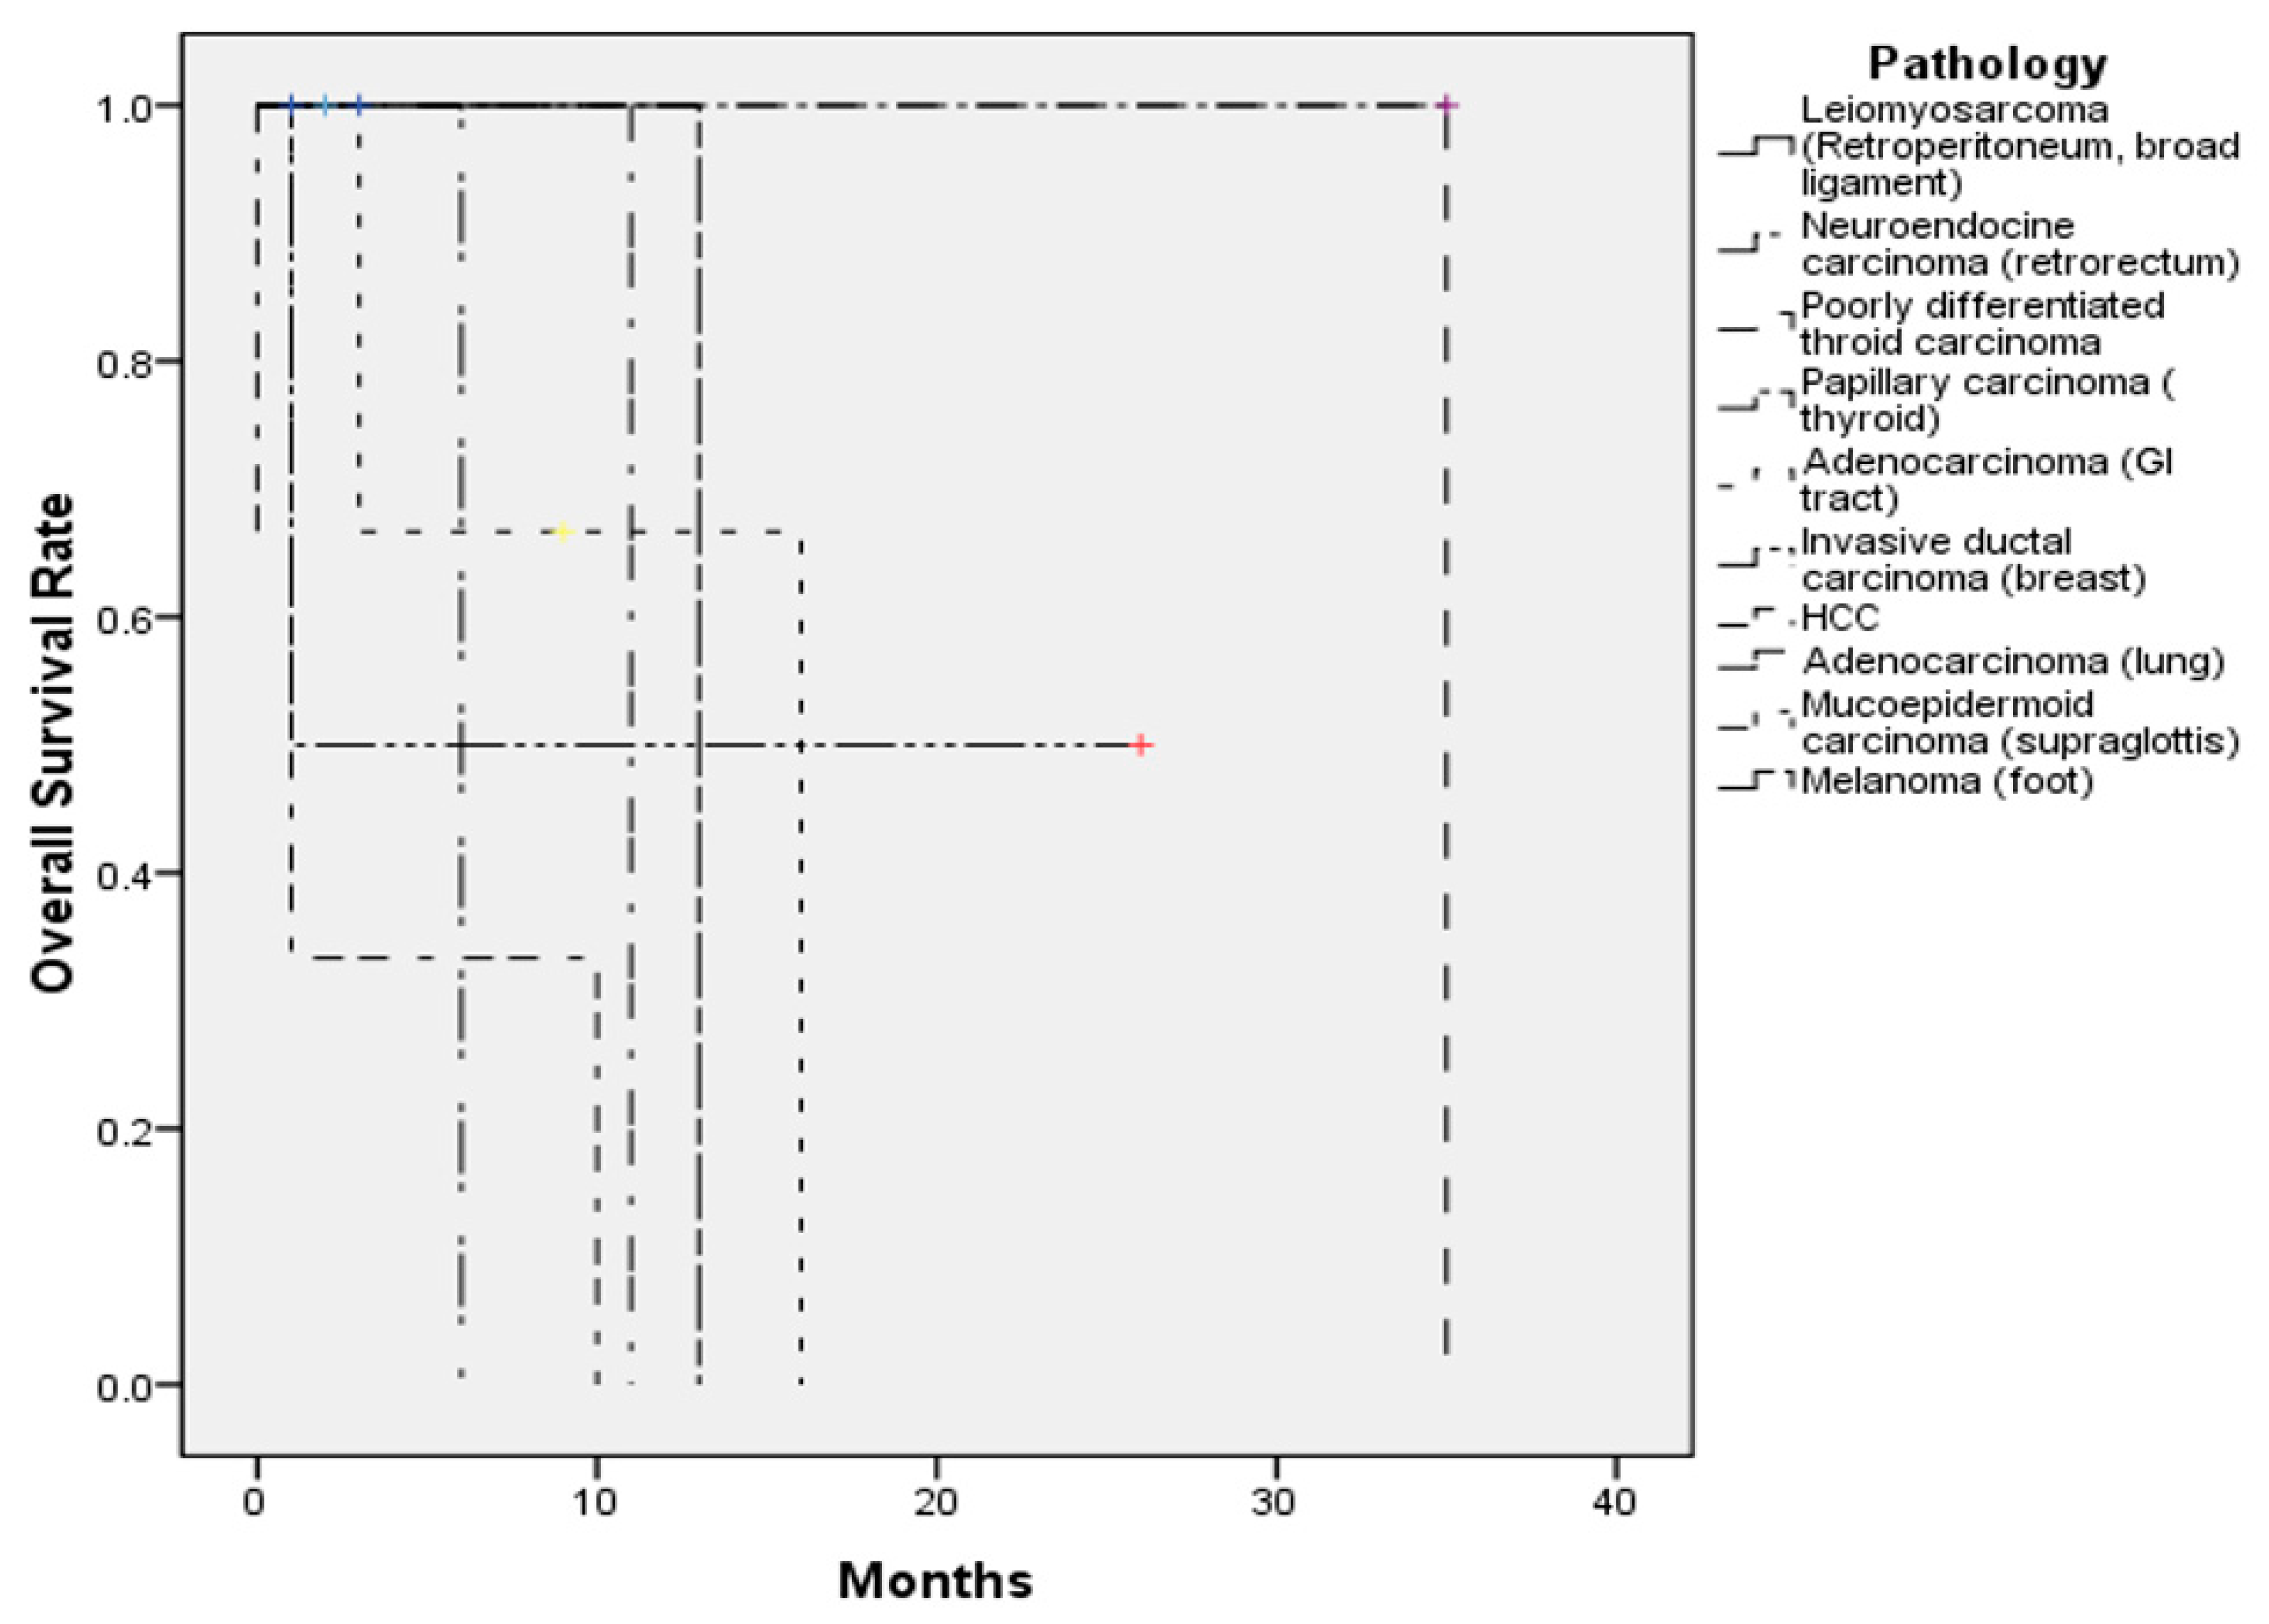 Jcm Free Full Text Metastatic Tumors Of The Sinonasal Cavity A 15 Year Review Of 17 Cases Html